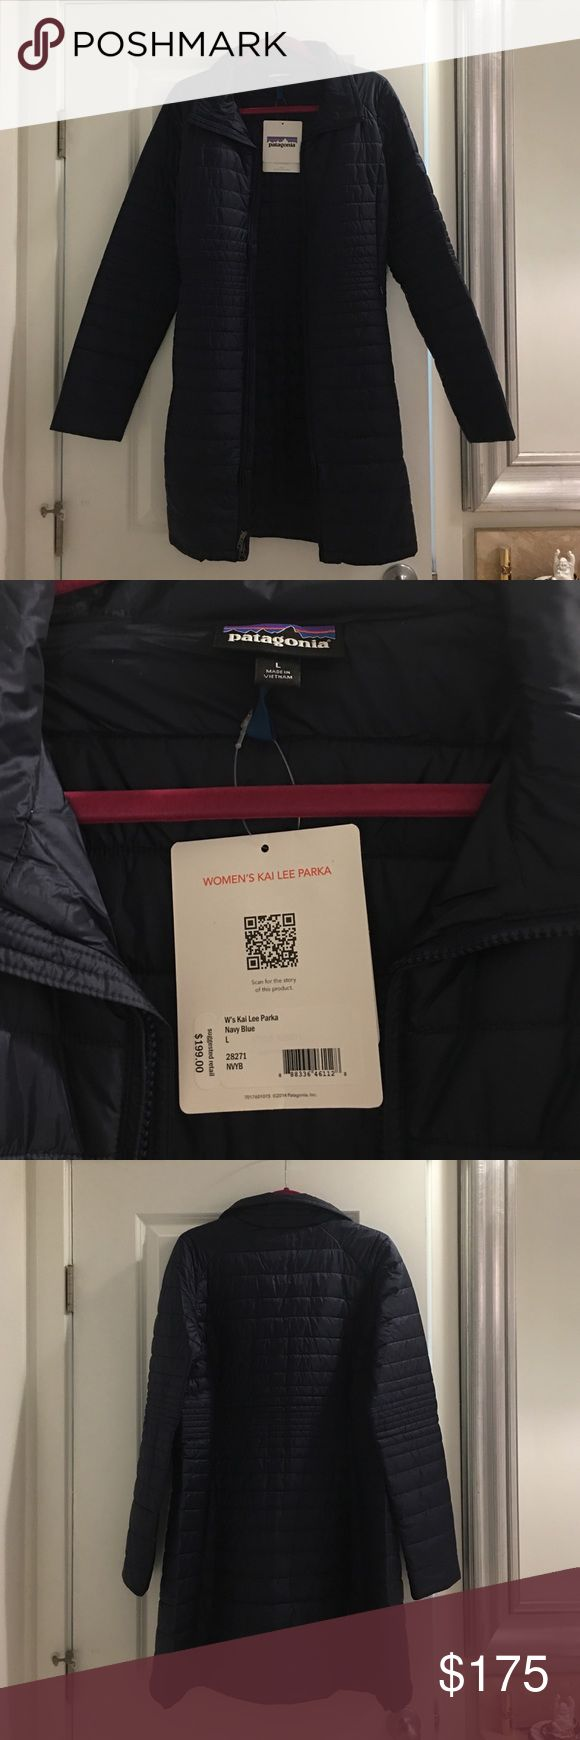 NWT Patagonia Navy Blue Kai Lee Parka SIZE L New with tags, never worn. $199 retail. Navy blue slim fit parka Patagonia Jackets & Coats Puffers